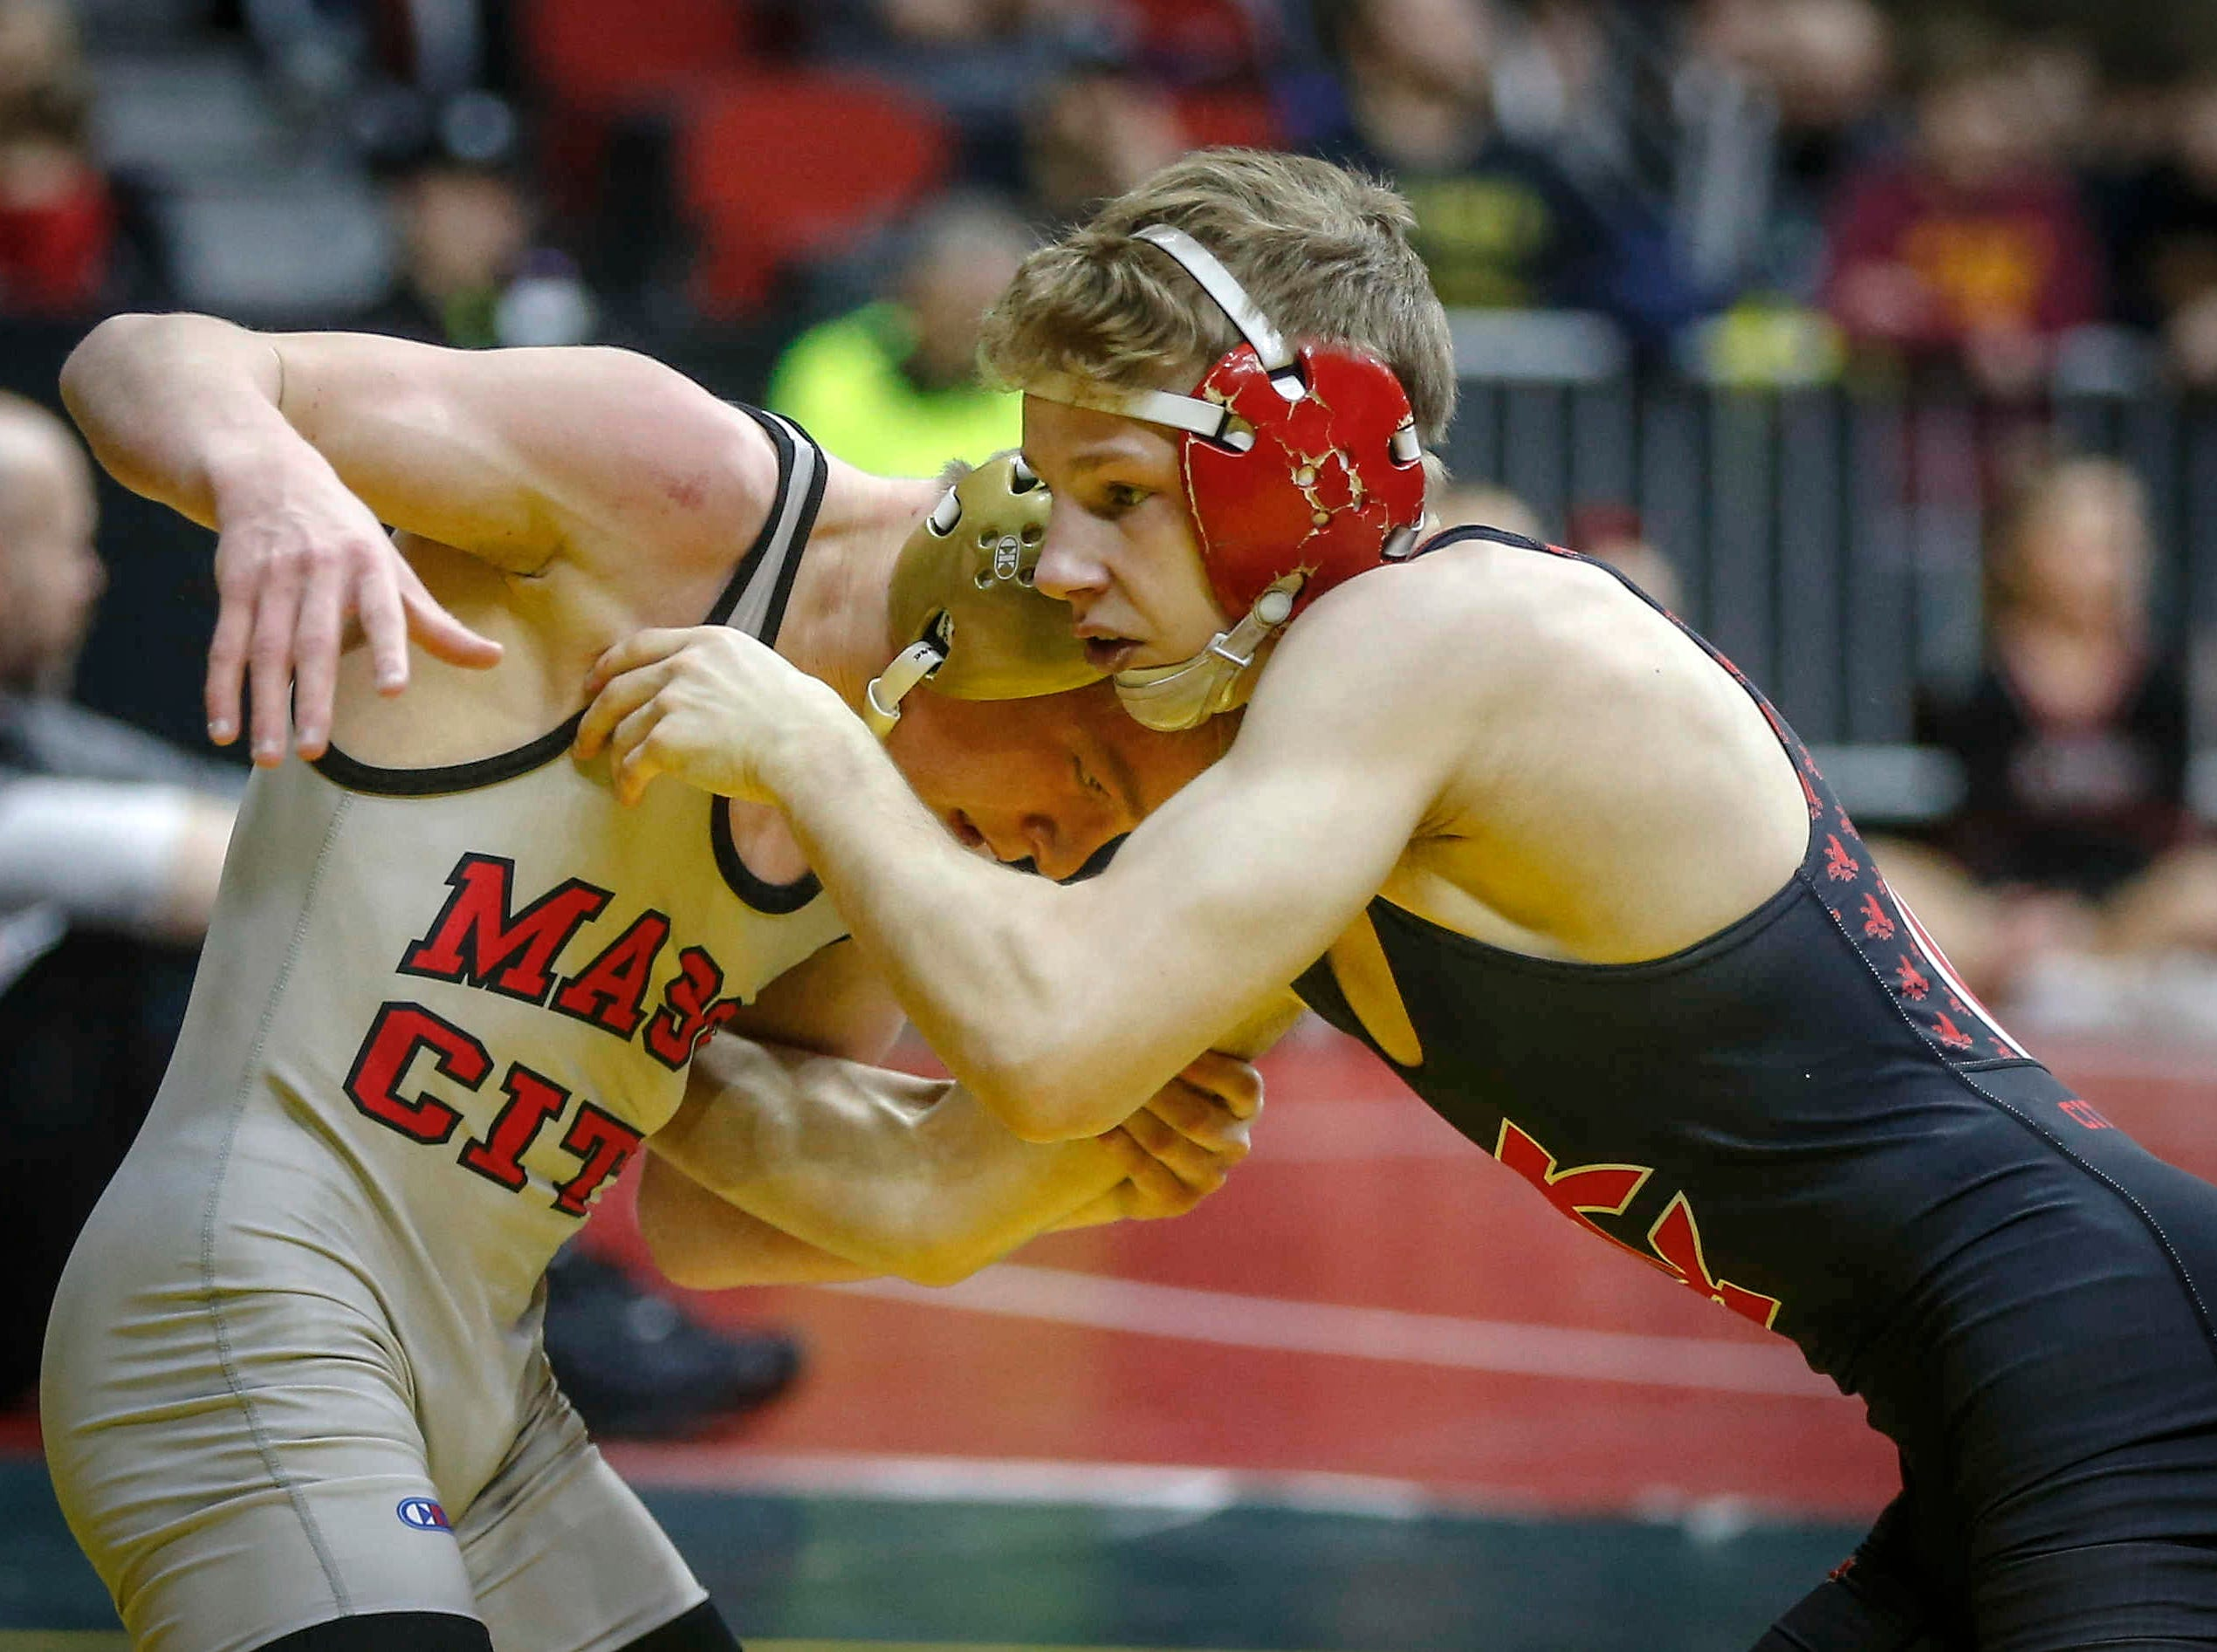 Iowa City High's Ethan Wood-Finley, right, battles Mason City's Jace Rhodes in their match at 106 pounds during the state wrestling quarterfinals on Friday, Feb. 15, 2019, at Wells Fargo Arena in Des Moines.